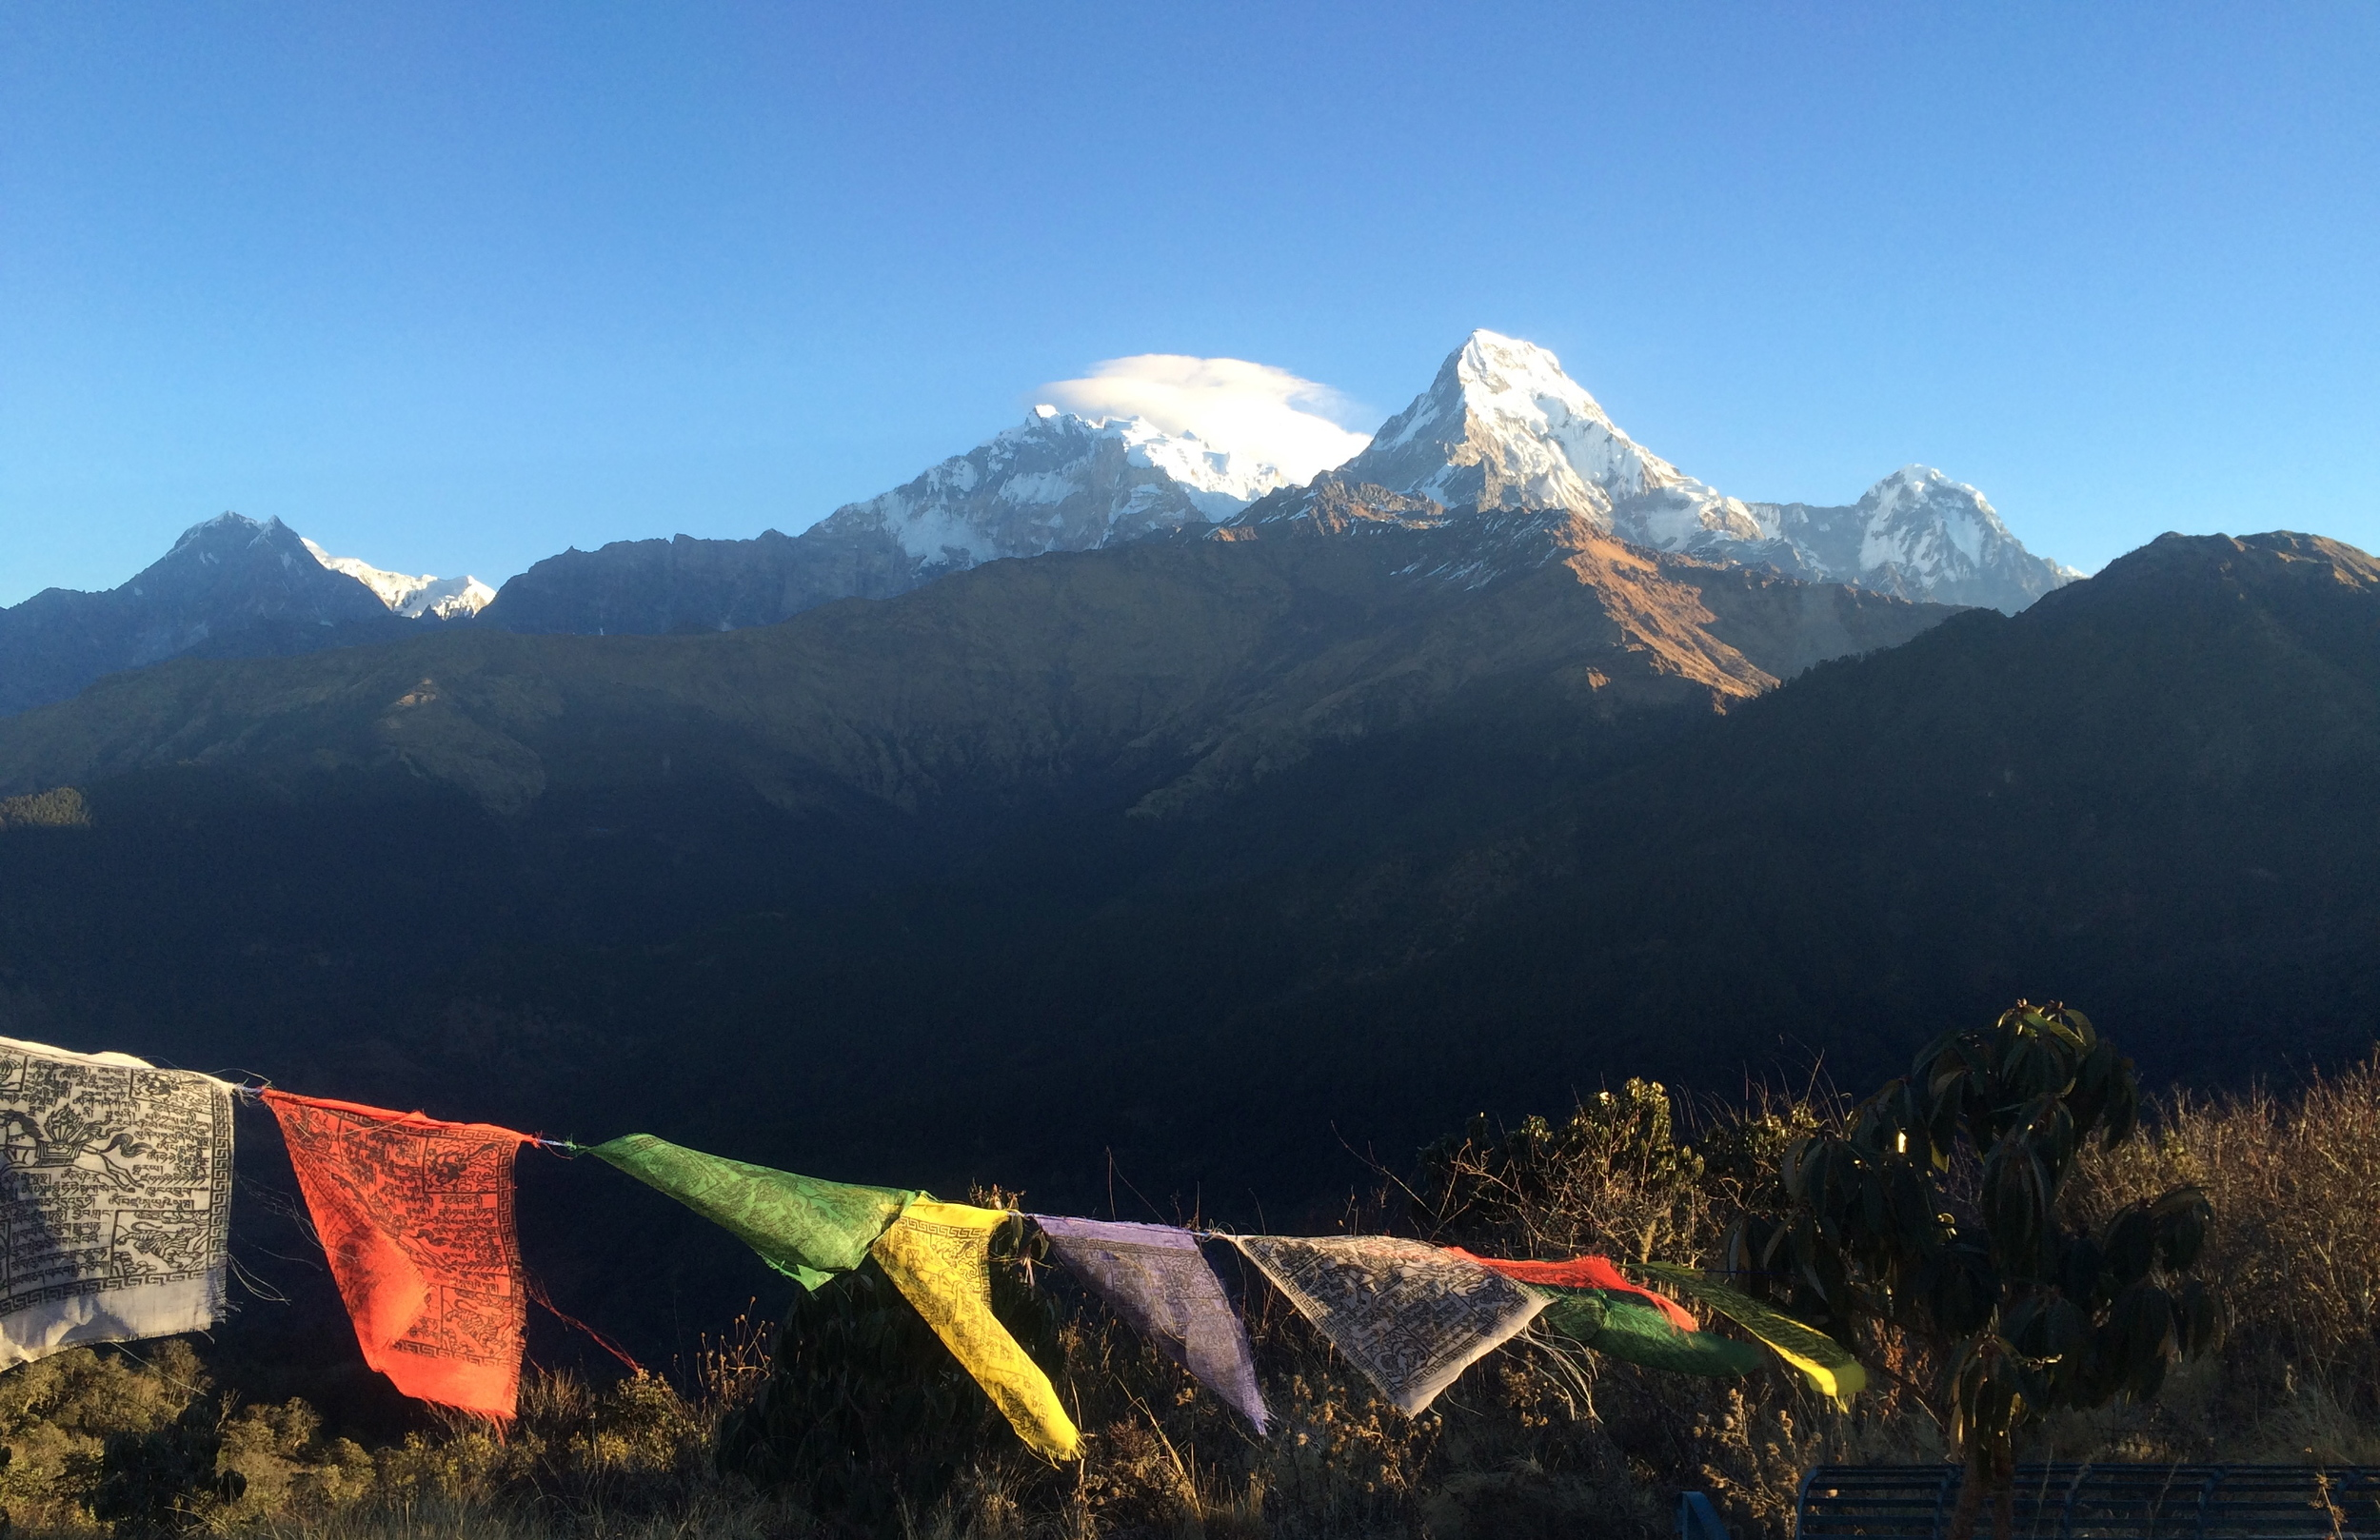 Prayer flags in the Annapurna Sanctuary, Nepal